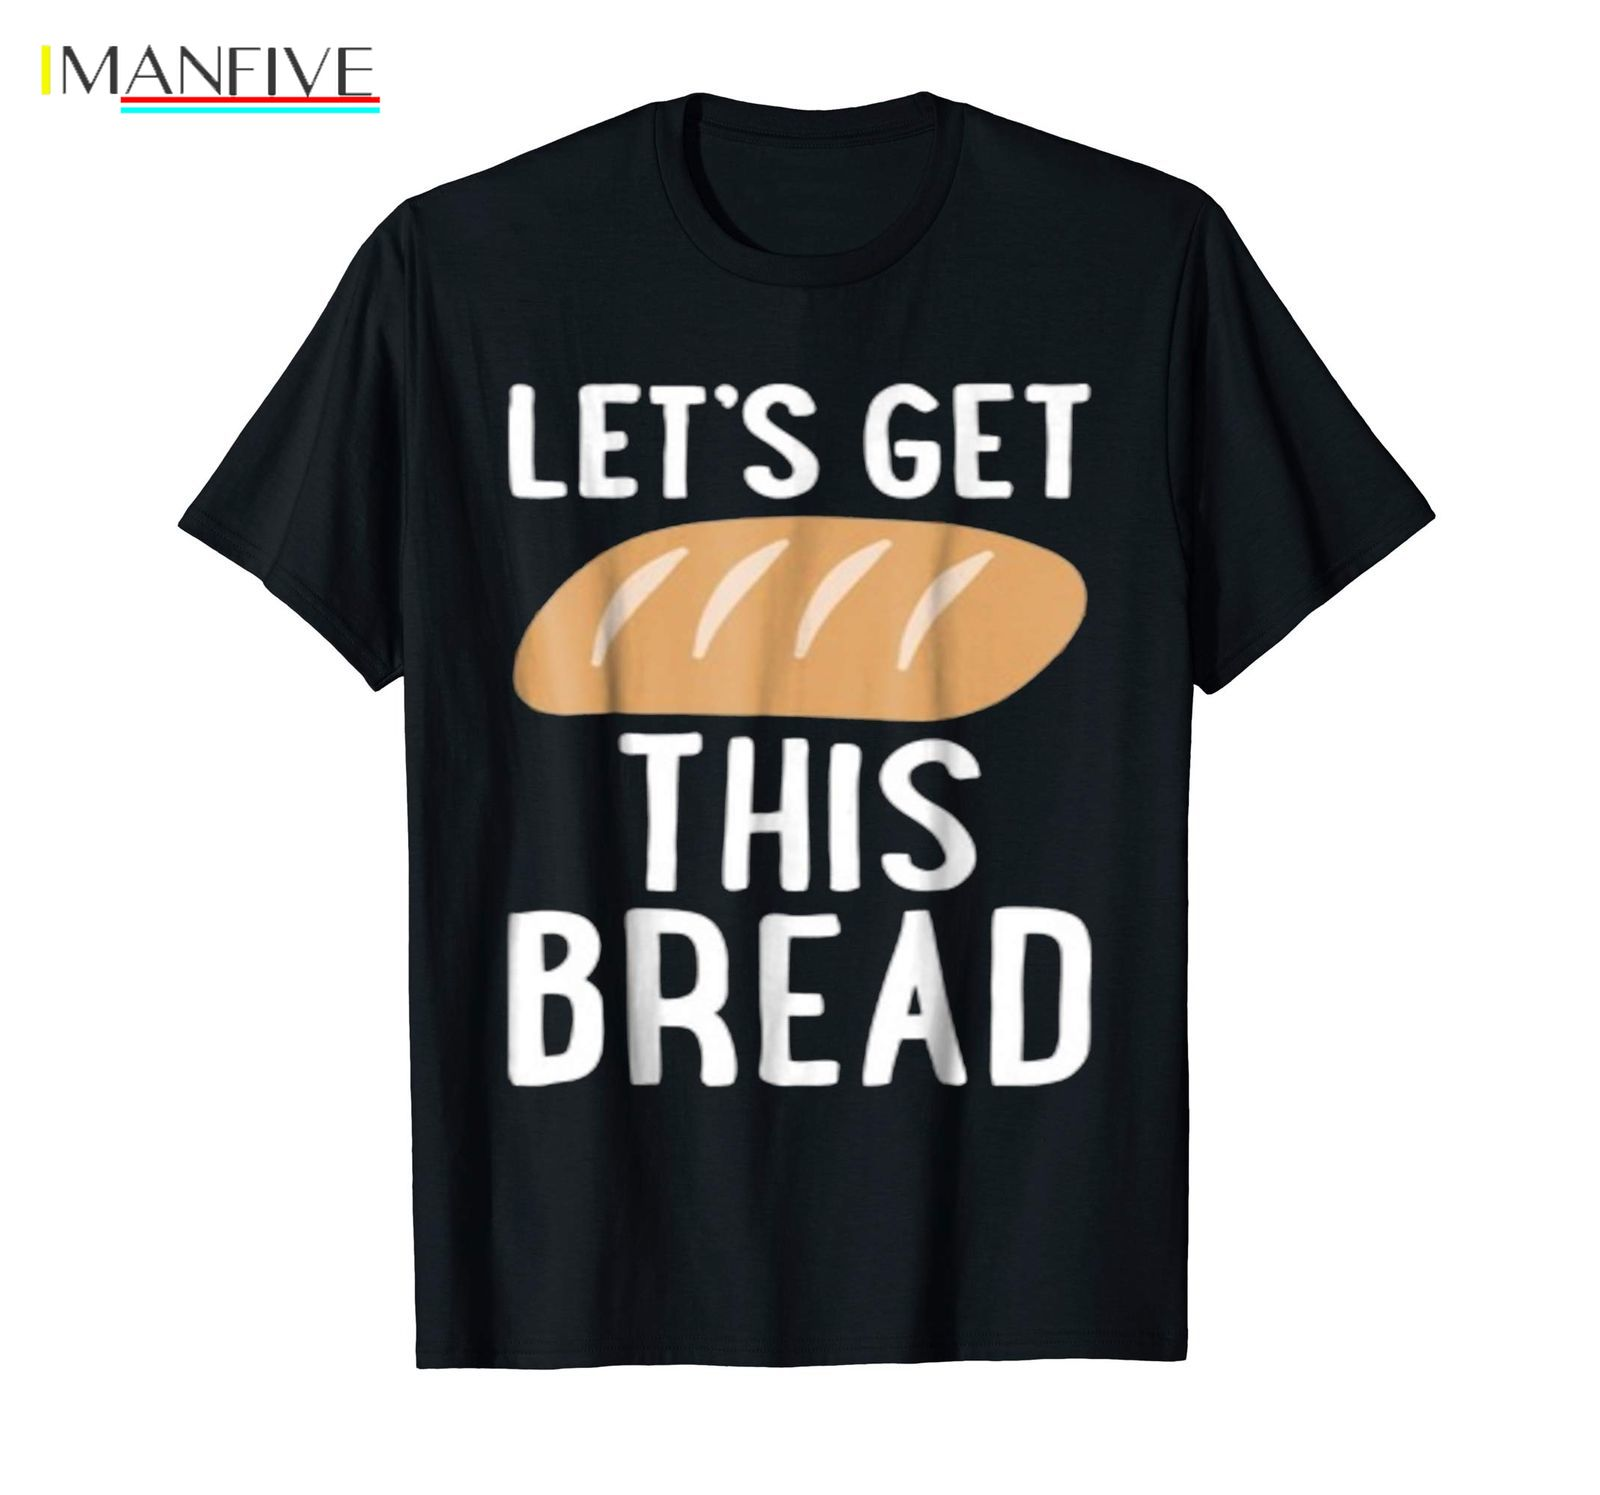 Lets Get This Bread Black T shirt Cool Casual pride t shirt men Unisex New Fashion tshirt free shipping tops ajax t shirts in T Shirts from Men 39 s Clothing